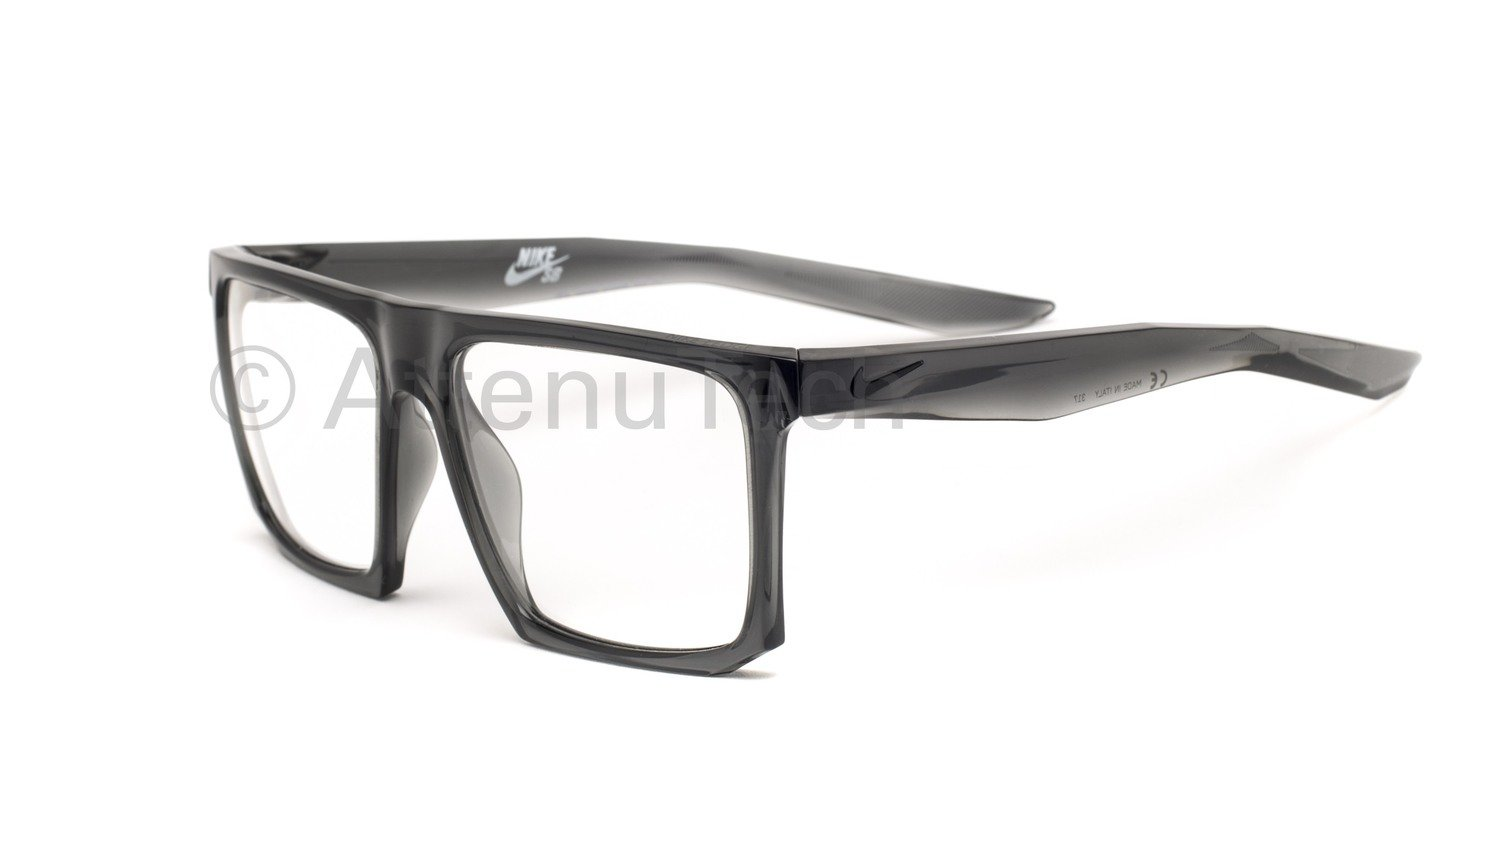 Nike Ledge - Radiation Protective Eyewear